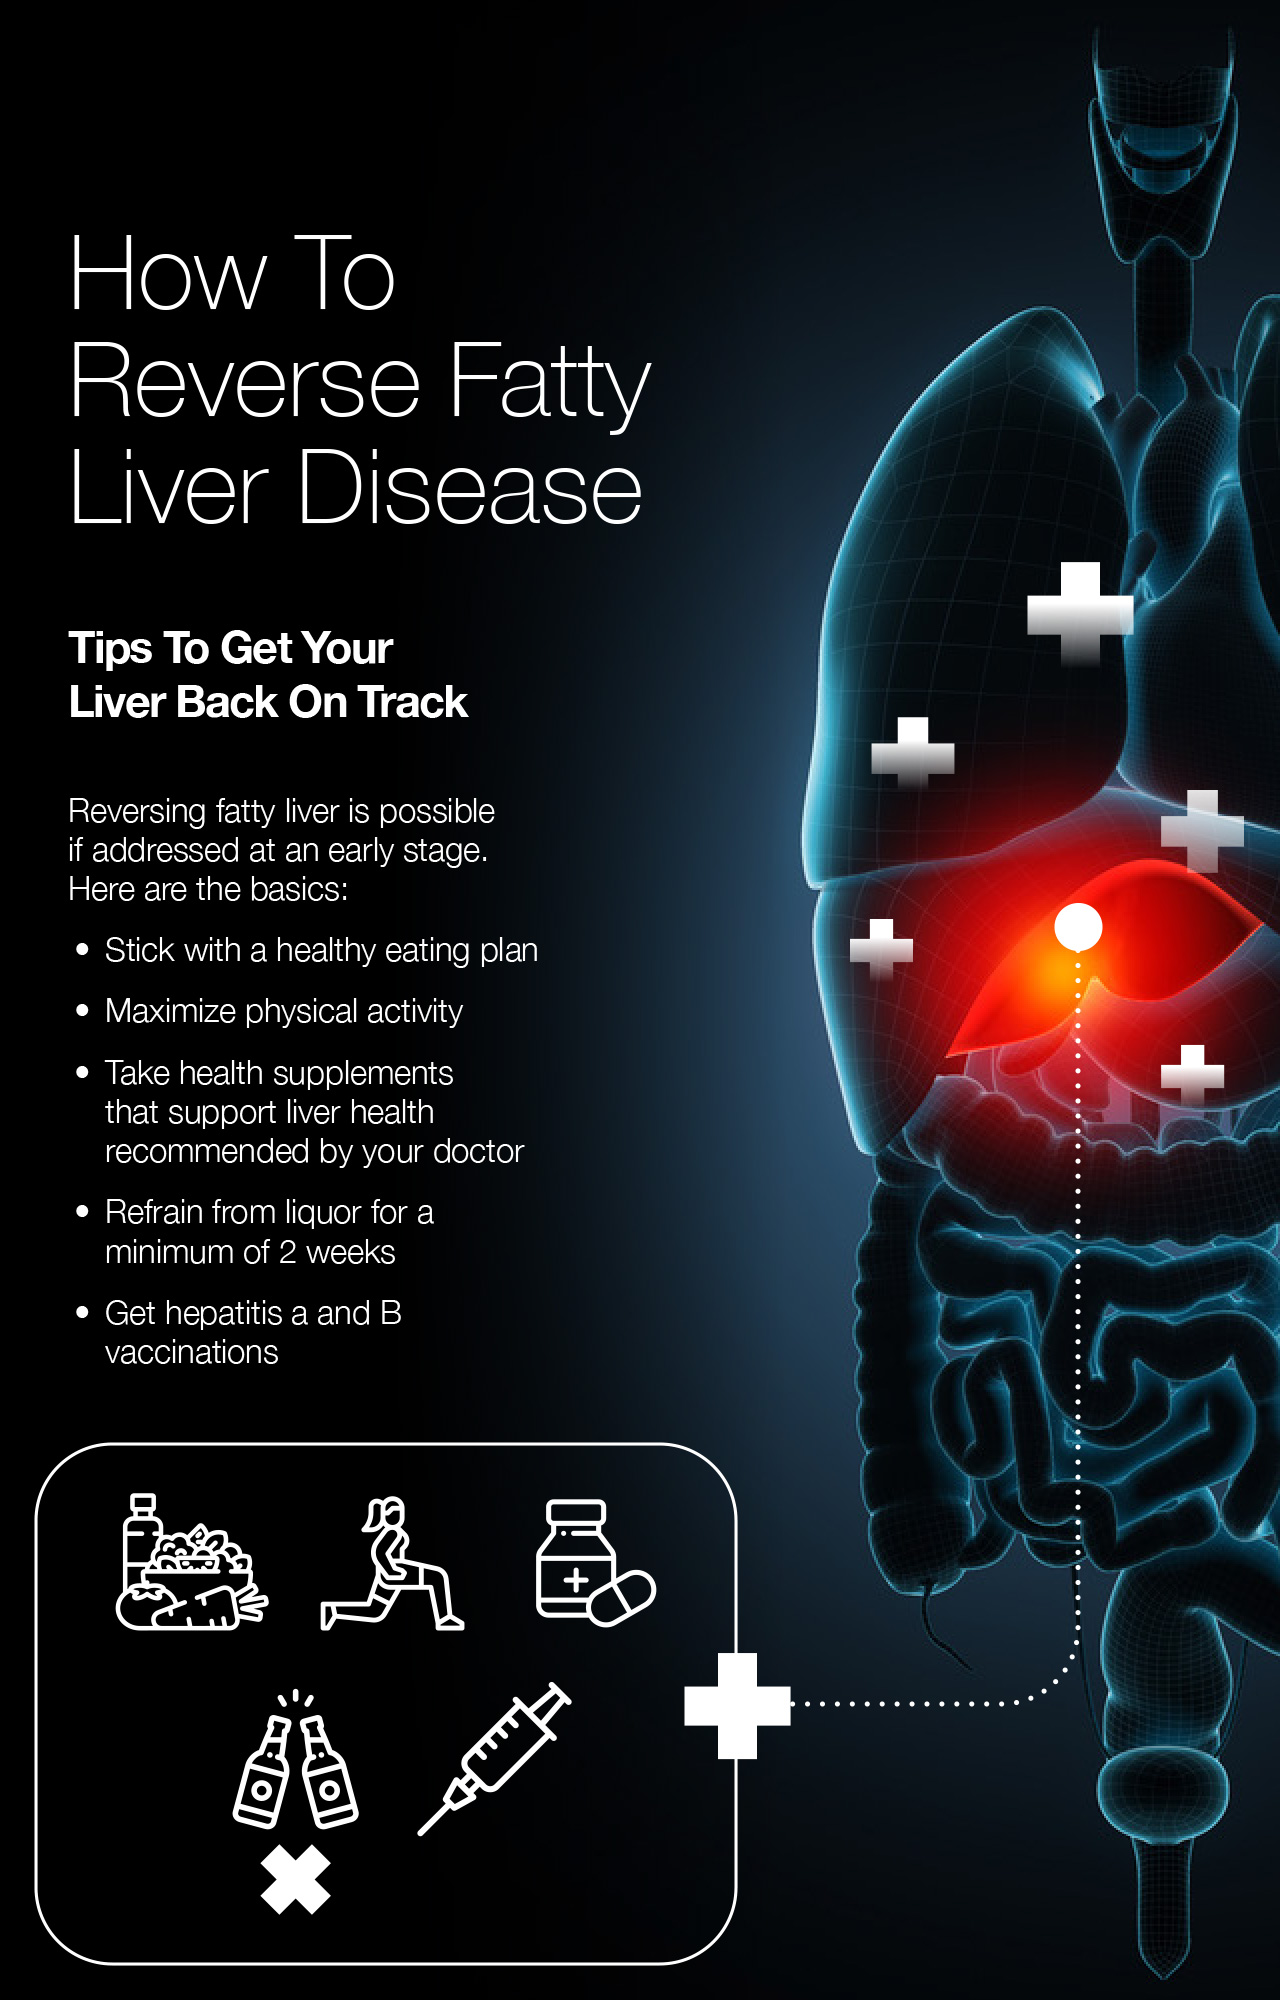 How To Reverse Fatty Liver Disease